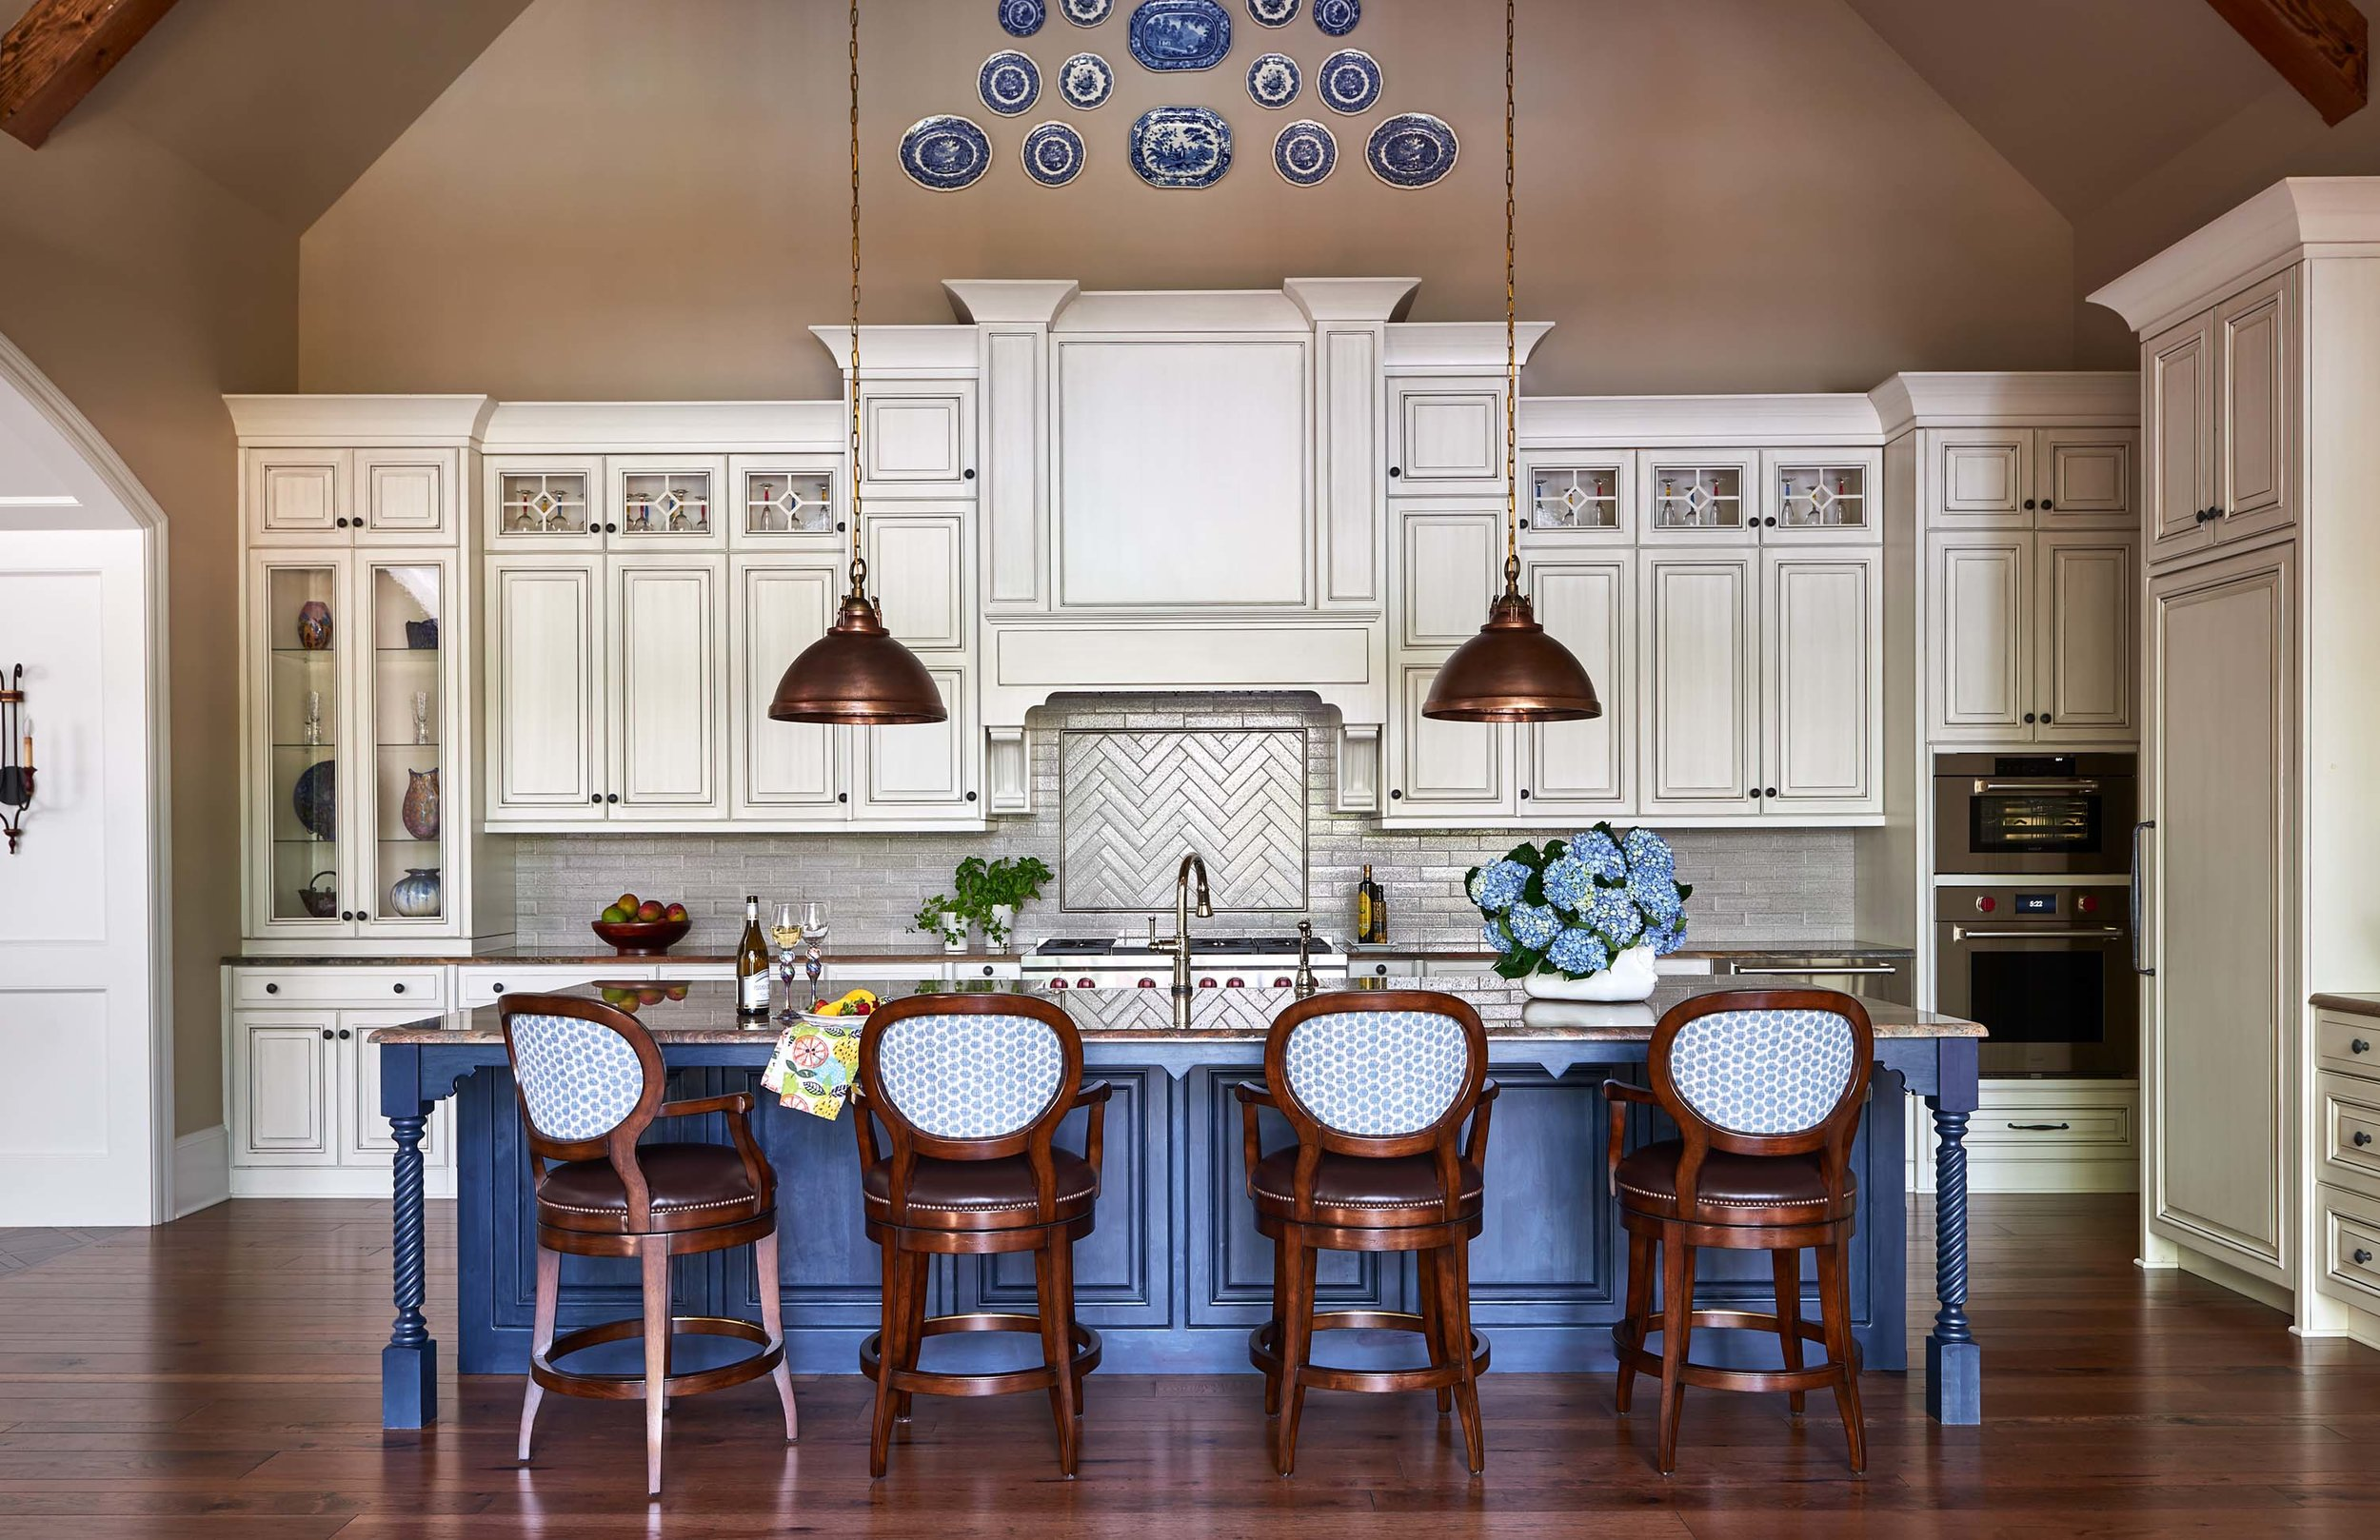 Off-white kitchen cabinets with blue island, copper pendants and blue and white transferware platter grouping on wall